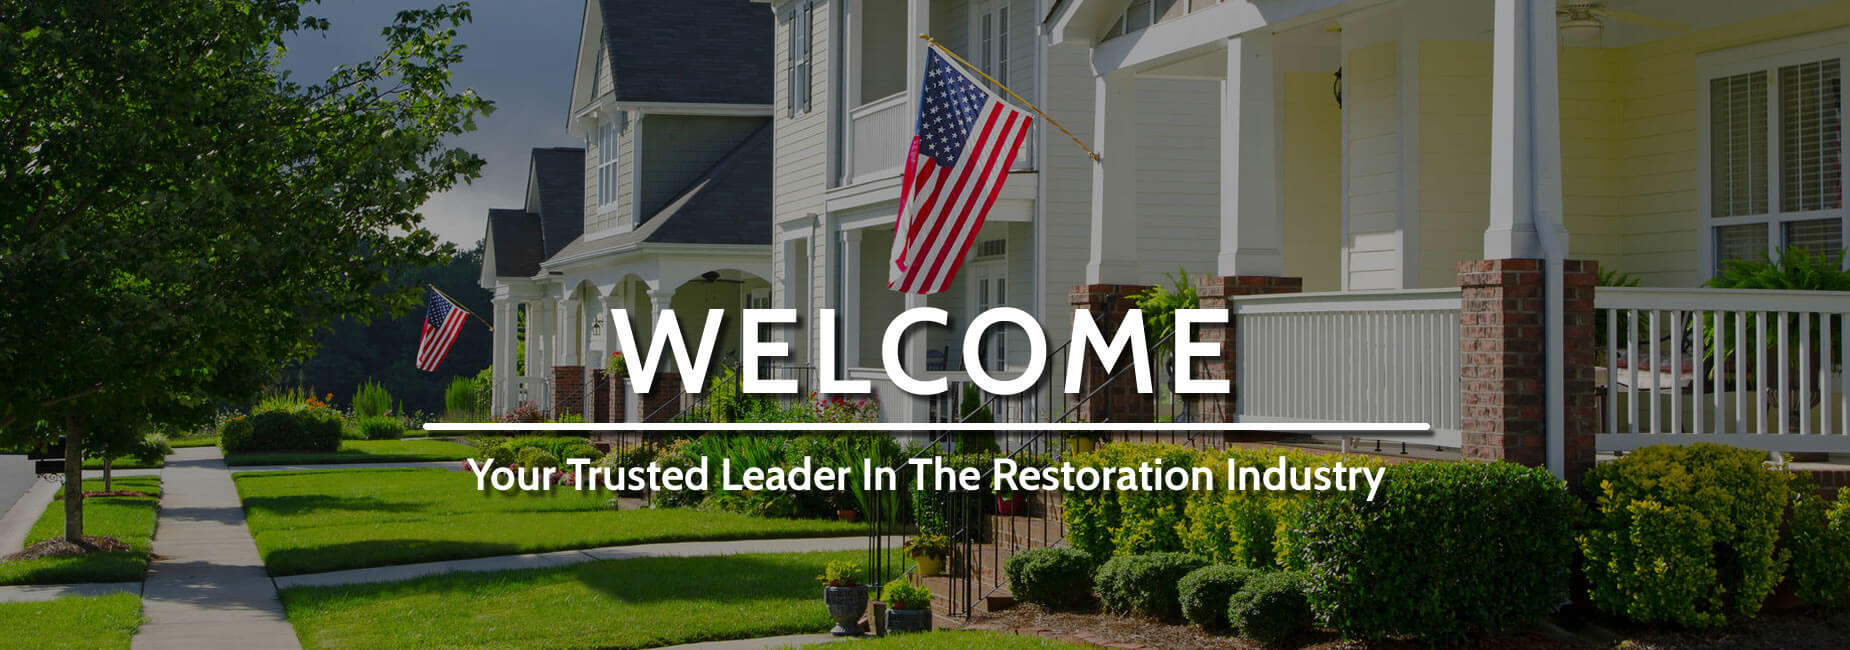 Welcome - Your Trusted Leader In The Restoration Industry